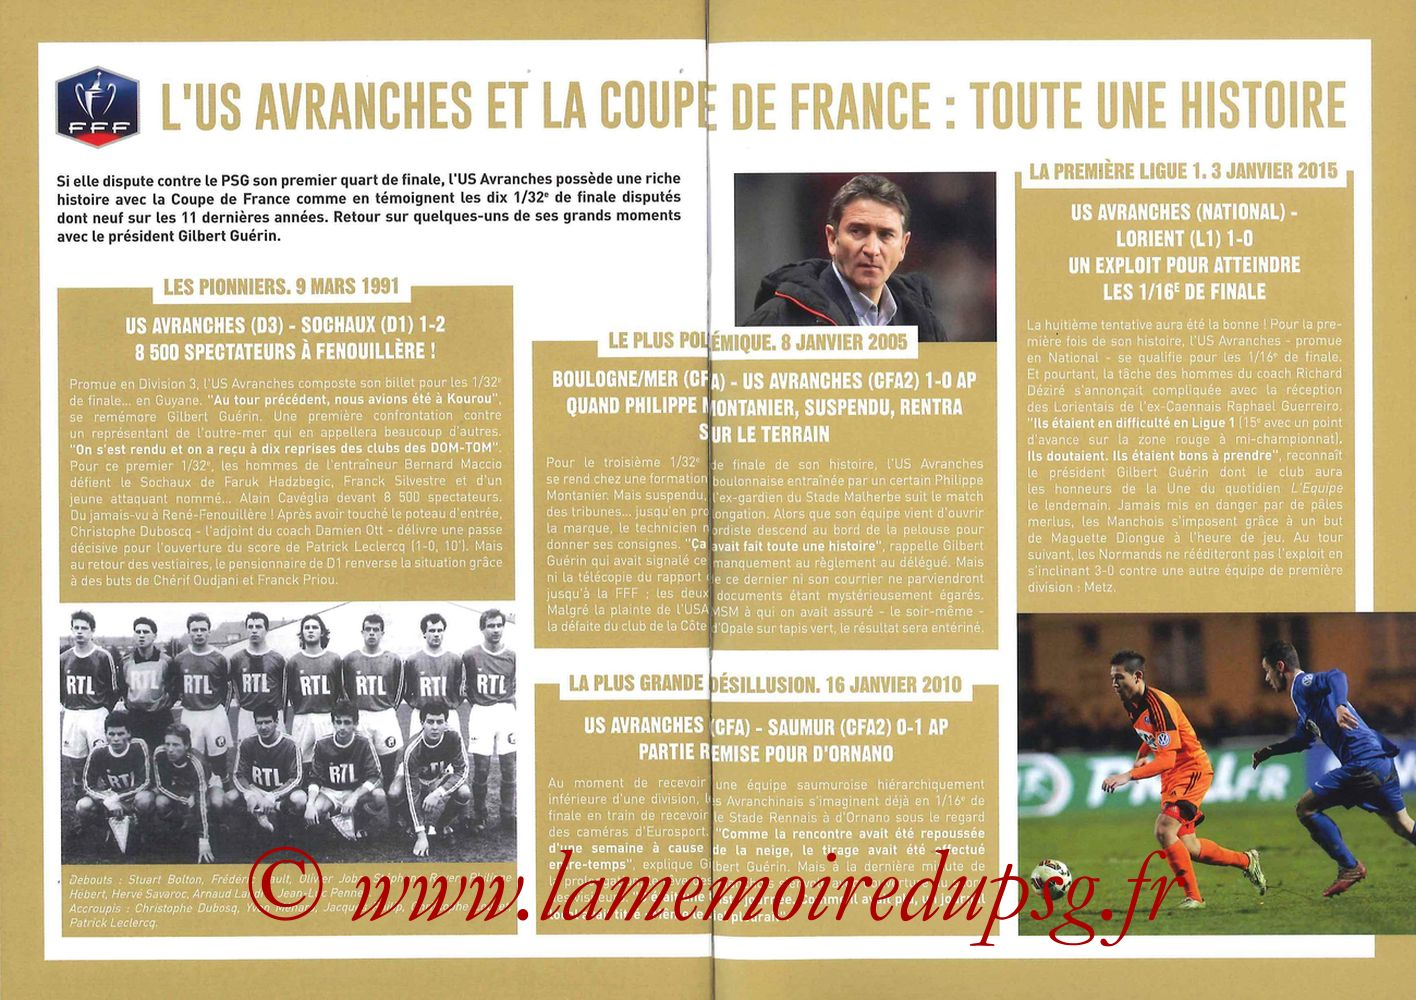 2017-04-05  Avranches-PSG (Quart CF à Caen, Programme officiel) - Pages 14 et 15